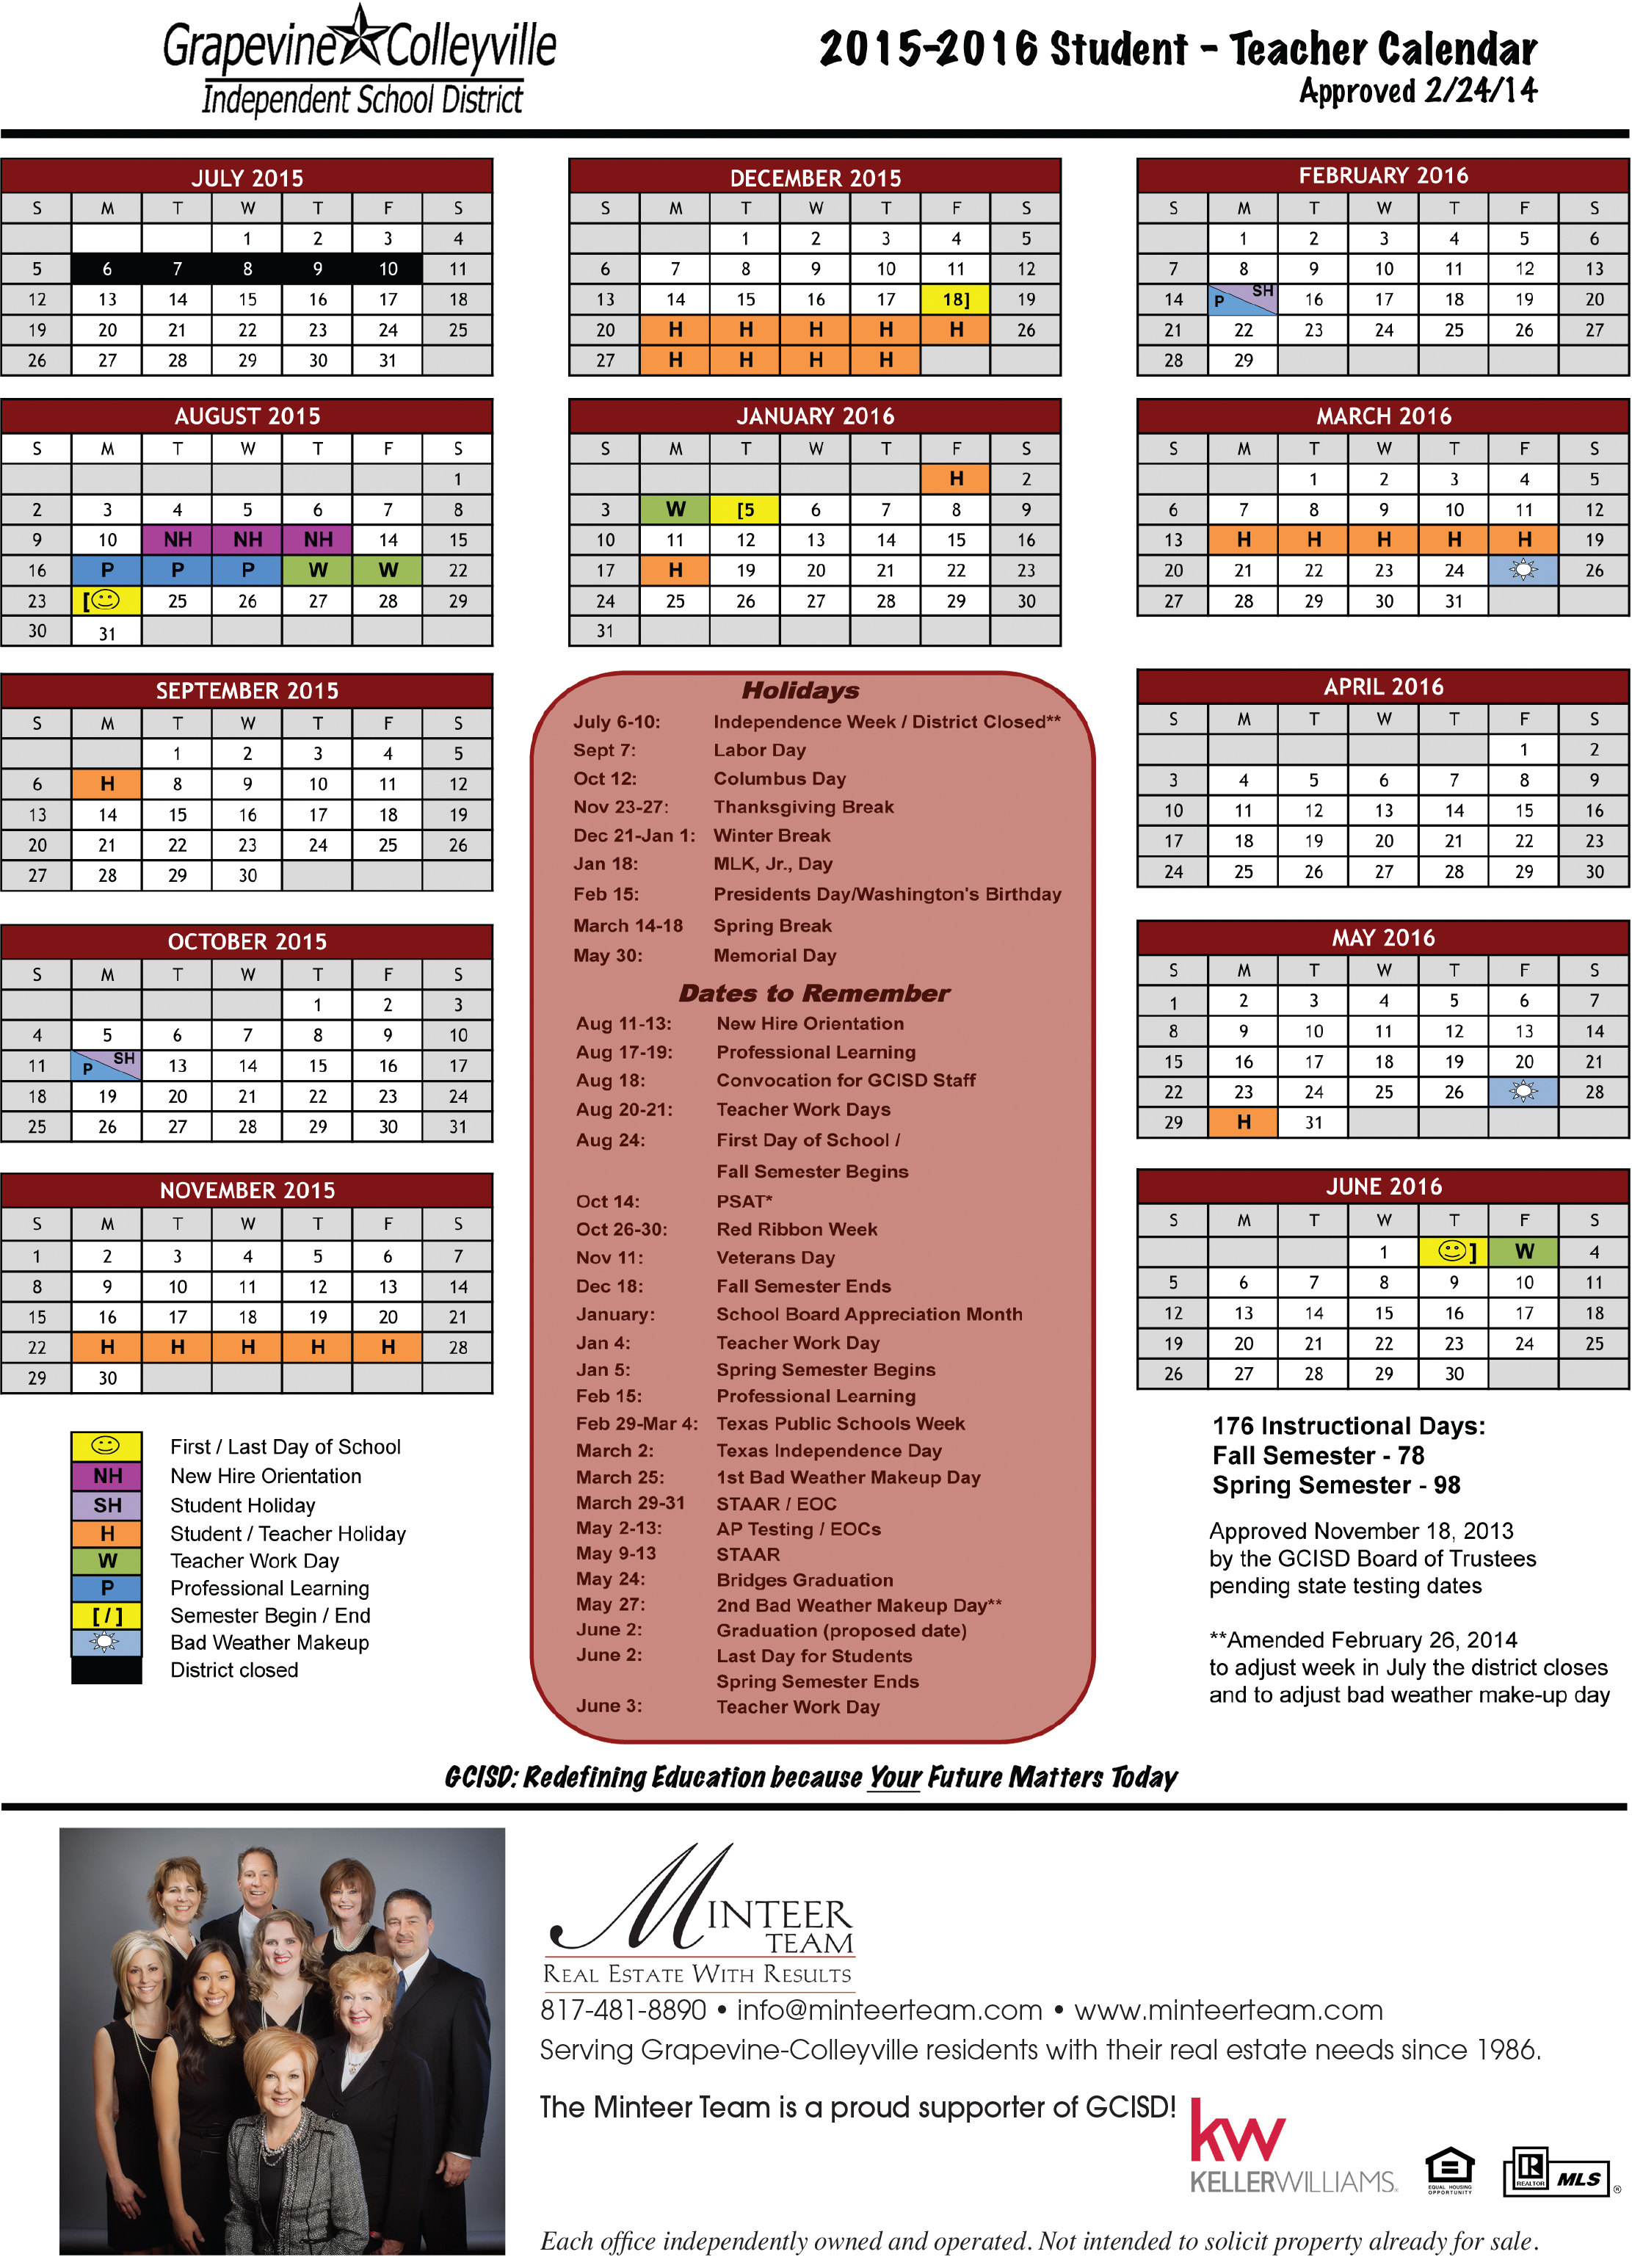 School Calendar for GCISD (2015 2016)   Minteer Real Estate Team